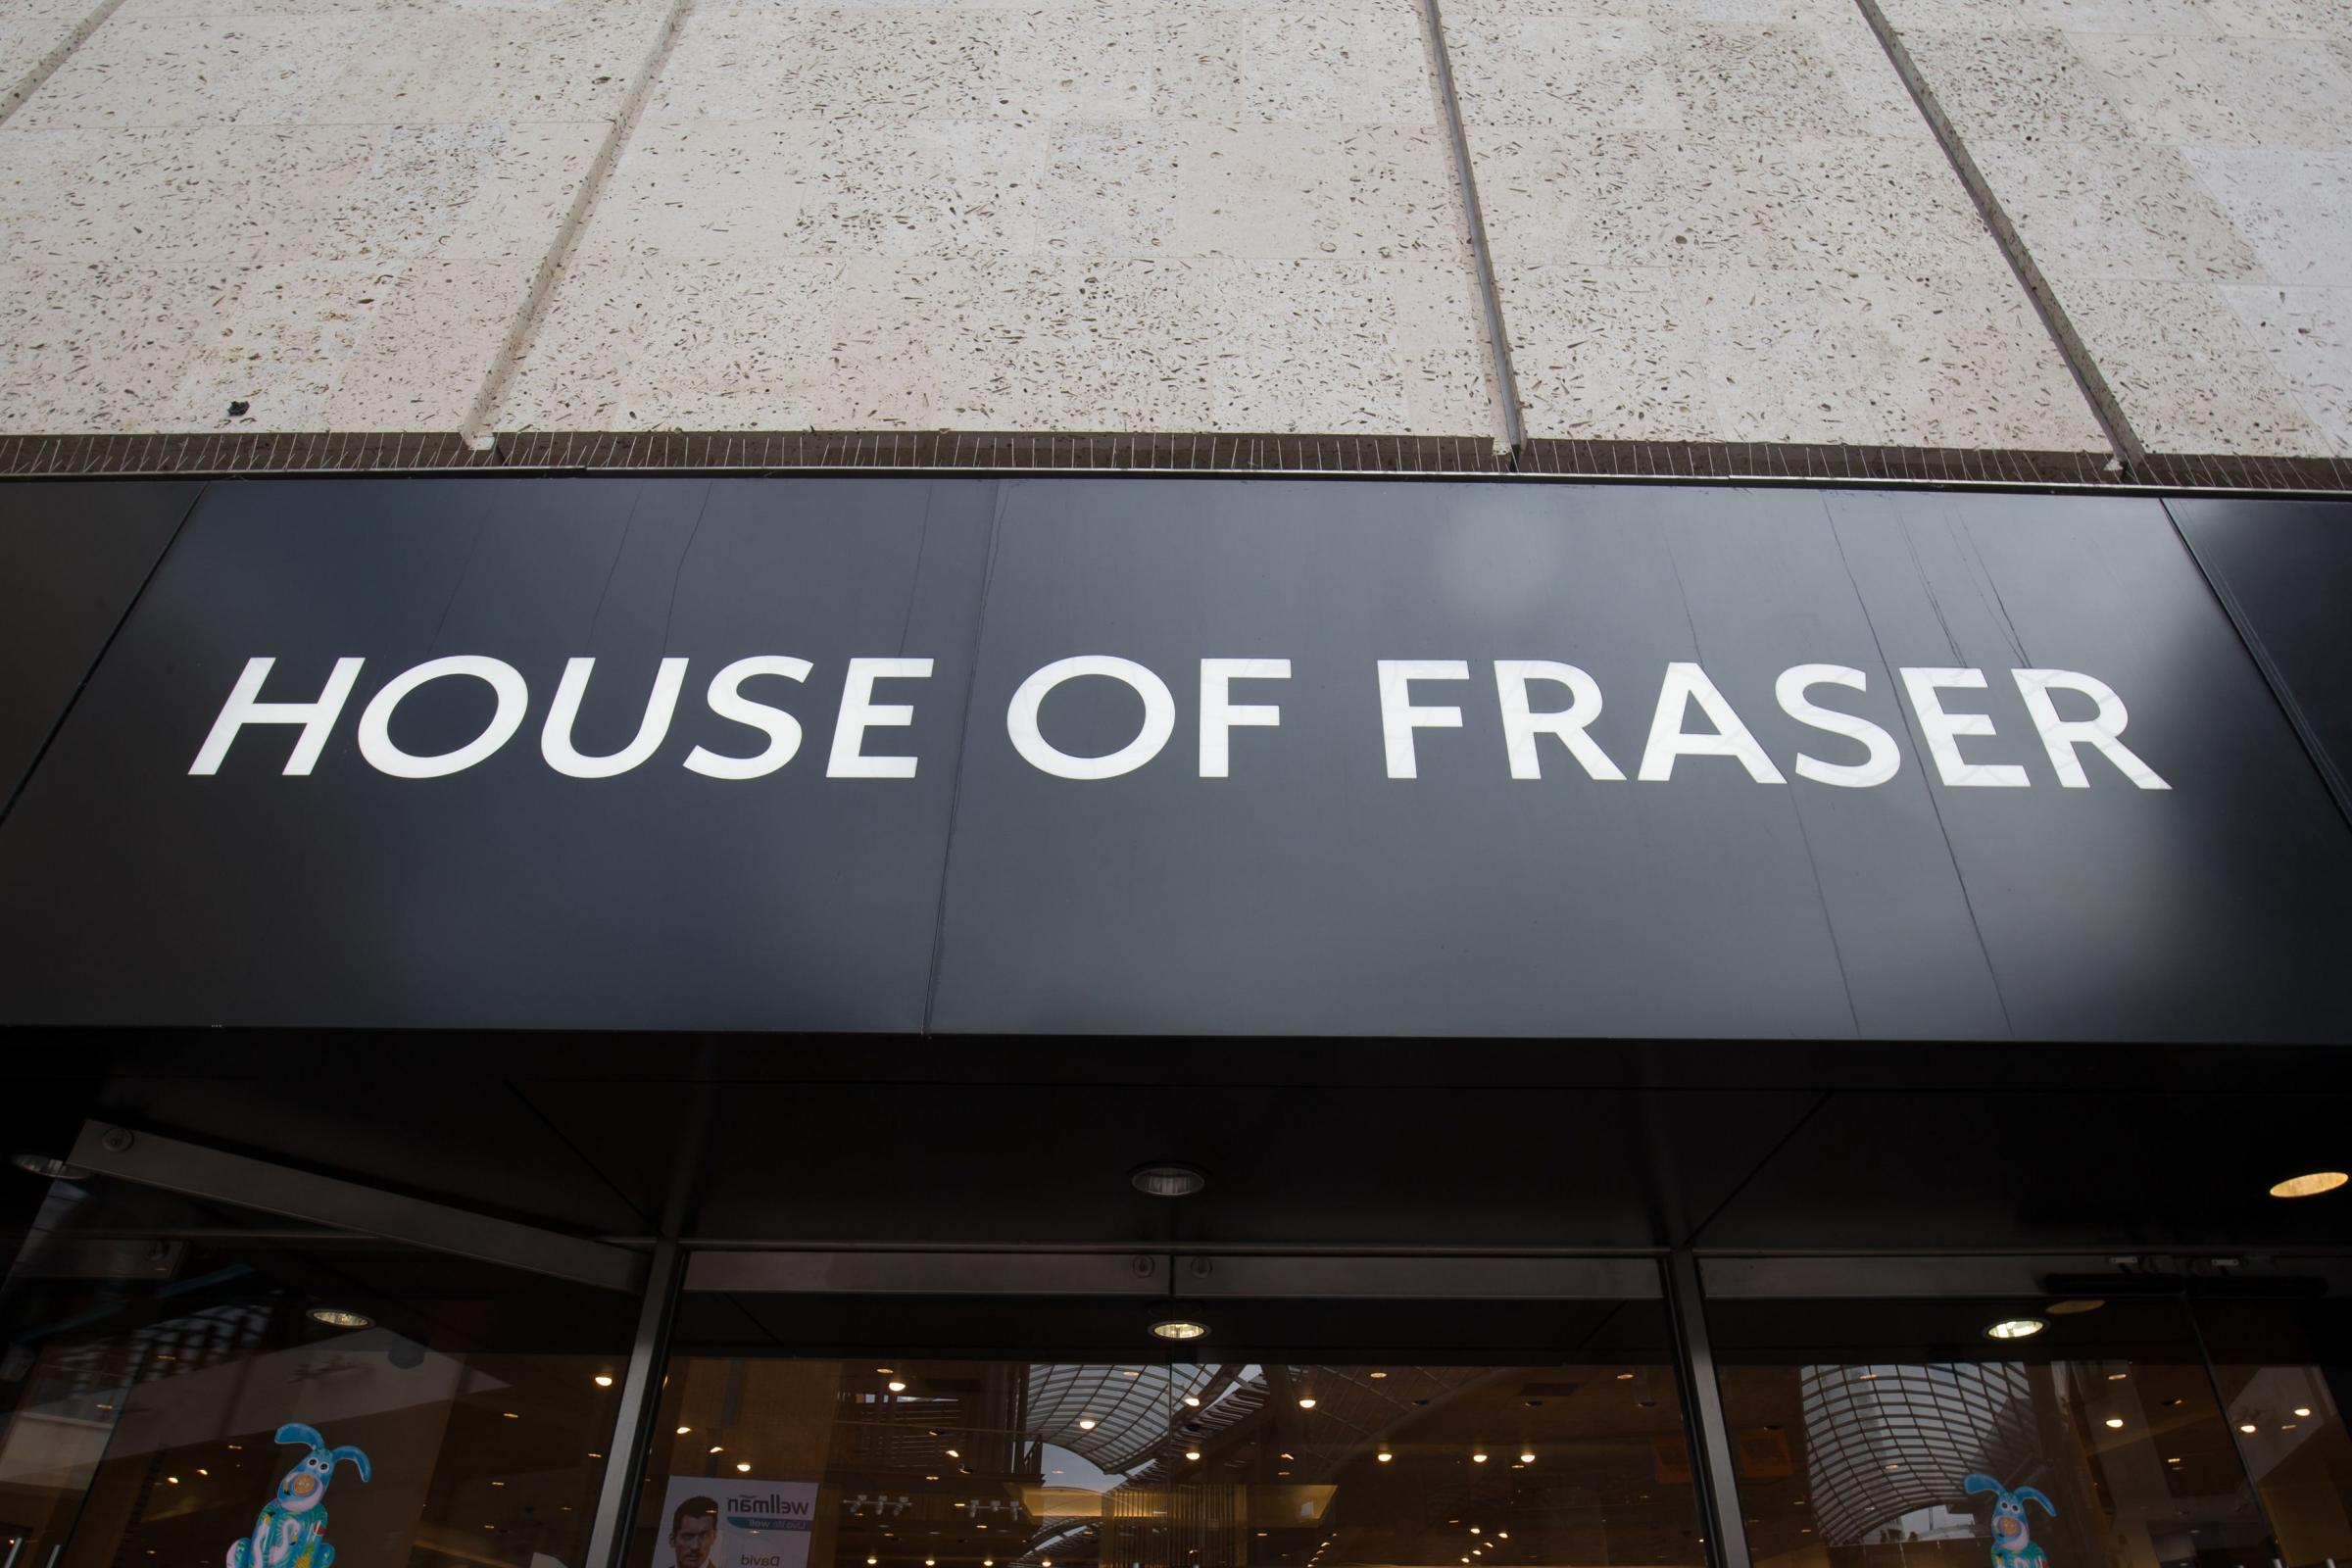 New jobs and investment at intu Lakeside in Thurrock as House of Fraser  moves out e0b538d9e